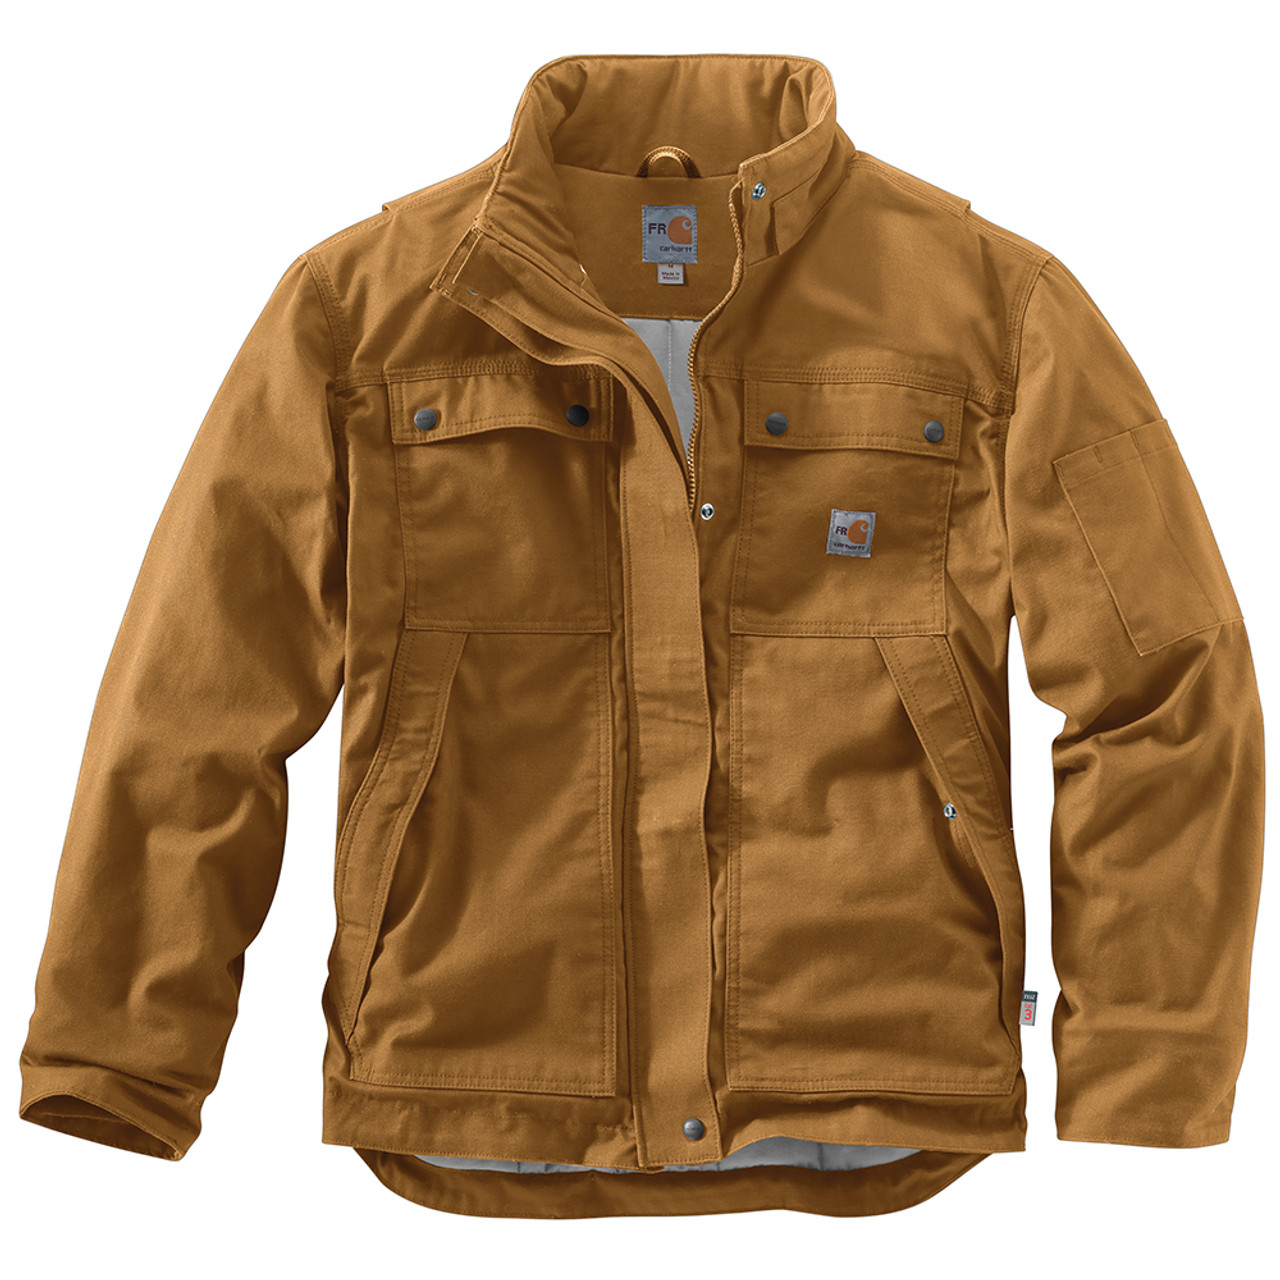 Caterpillar Mens Big and Tall Flame Resistant Insulated Jacket